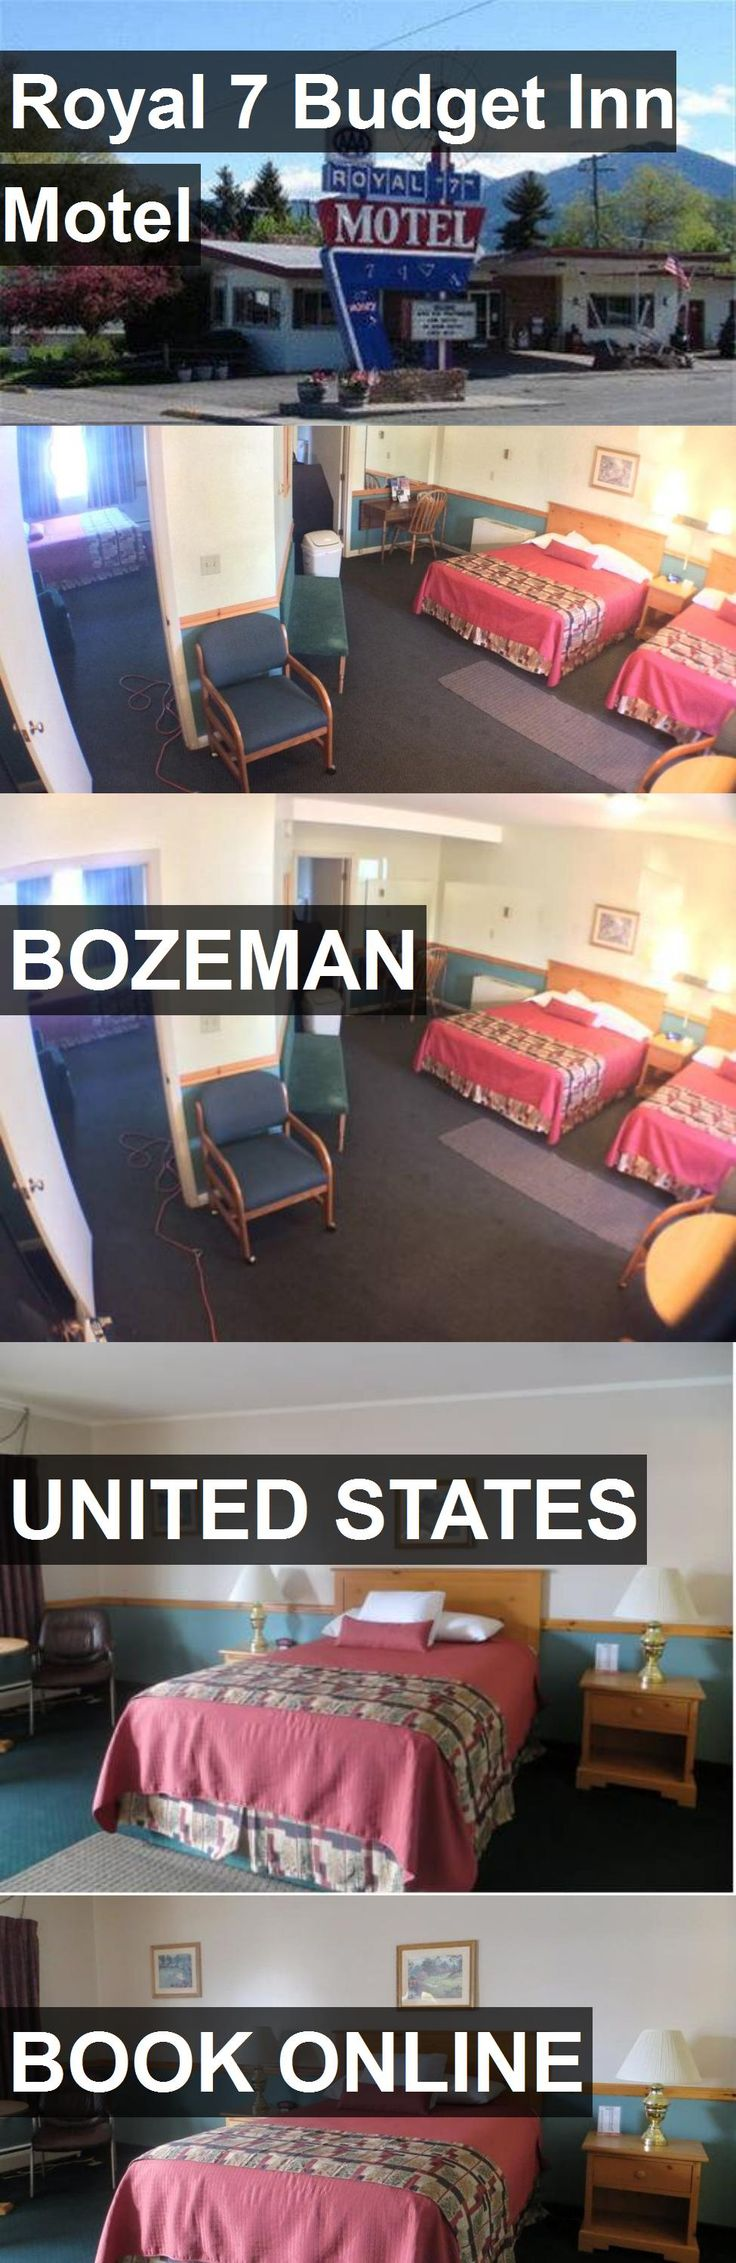 Hotel Royal 7 Budget Inn Motel in Bozeman, United States. For more information, photos, reviews and best prices please follow the link. #UnitedStates #Bozeman #travel #vacation #hotel